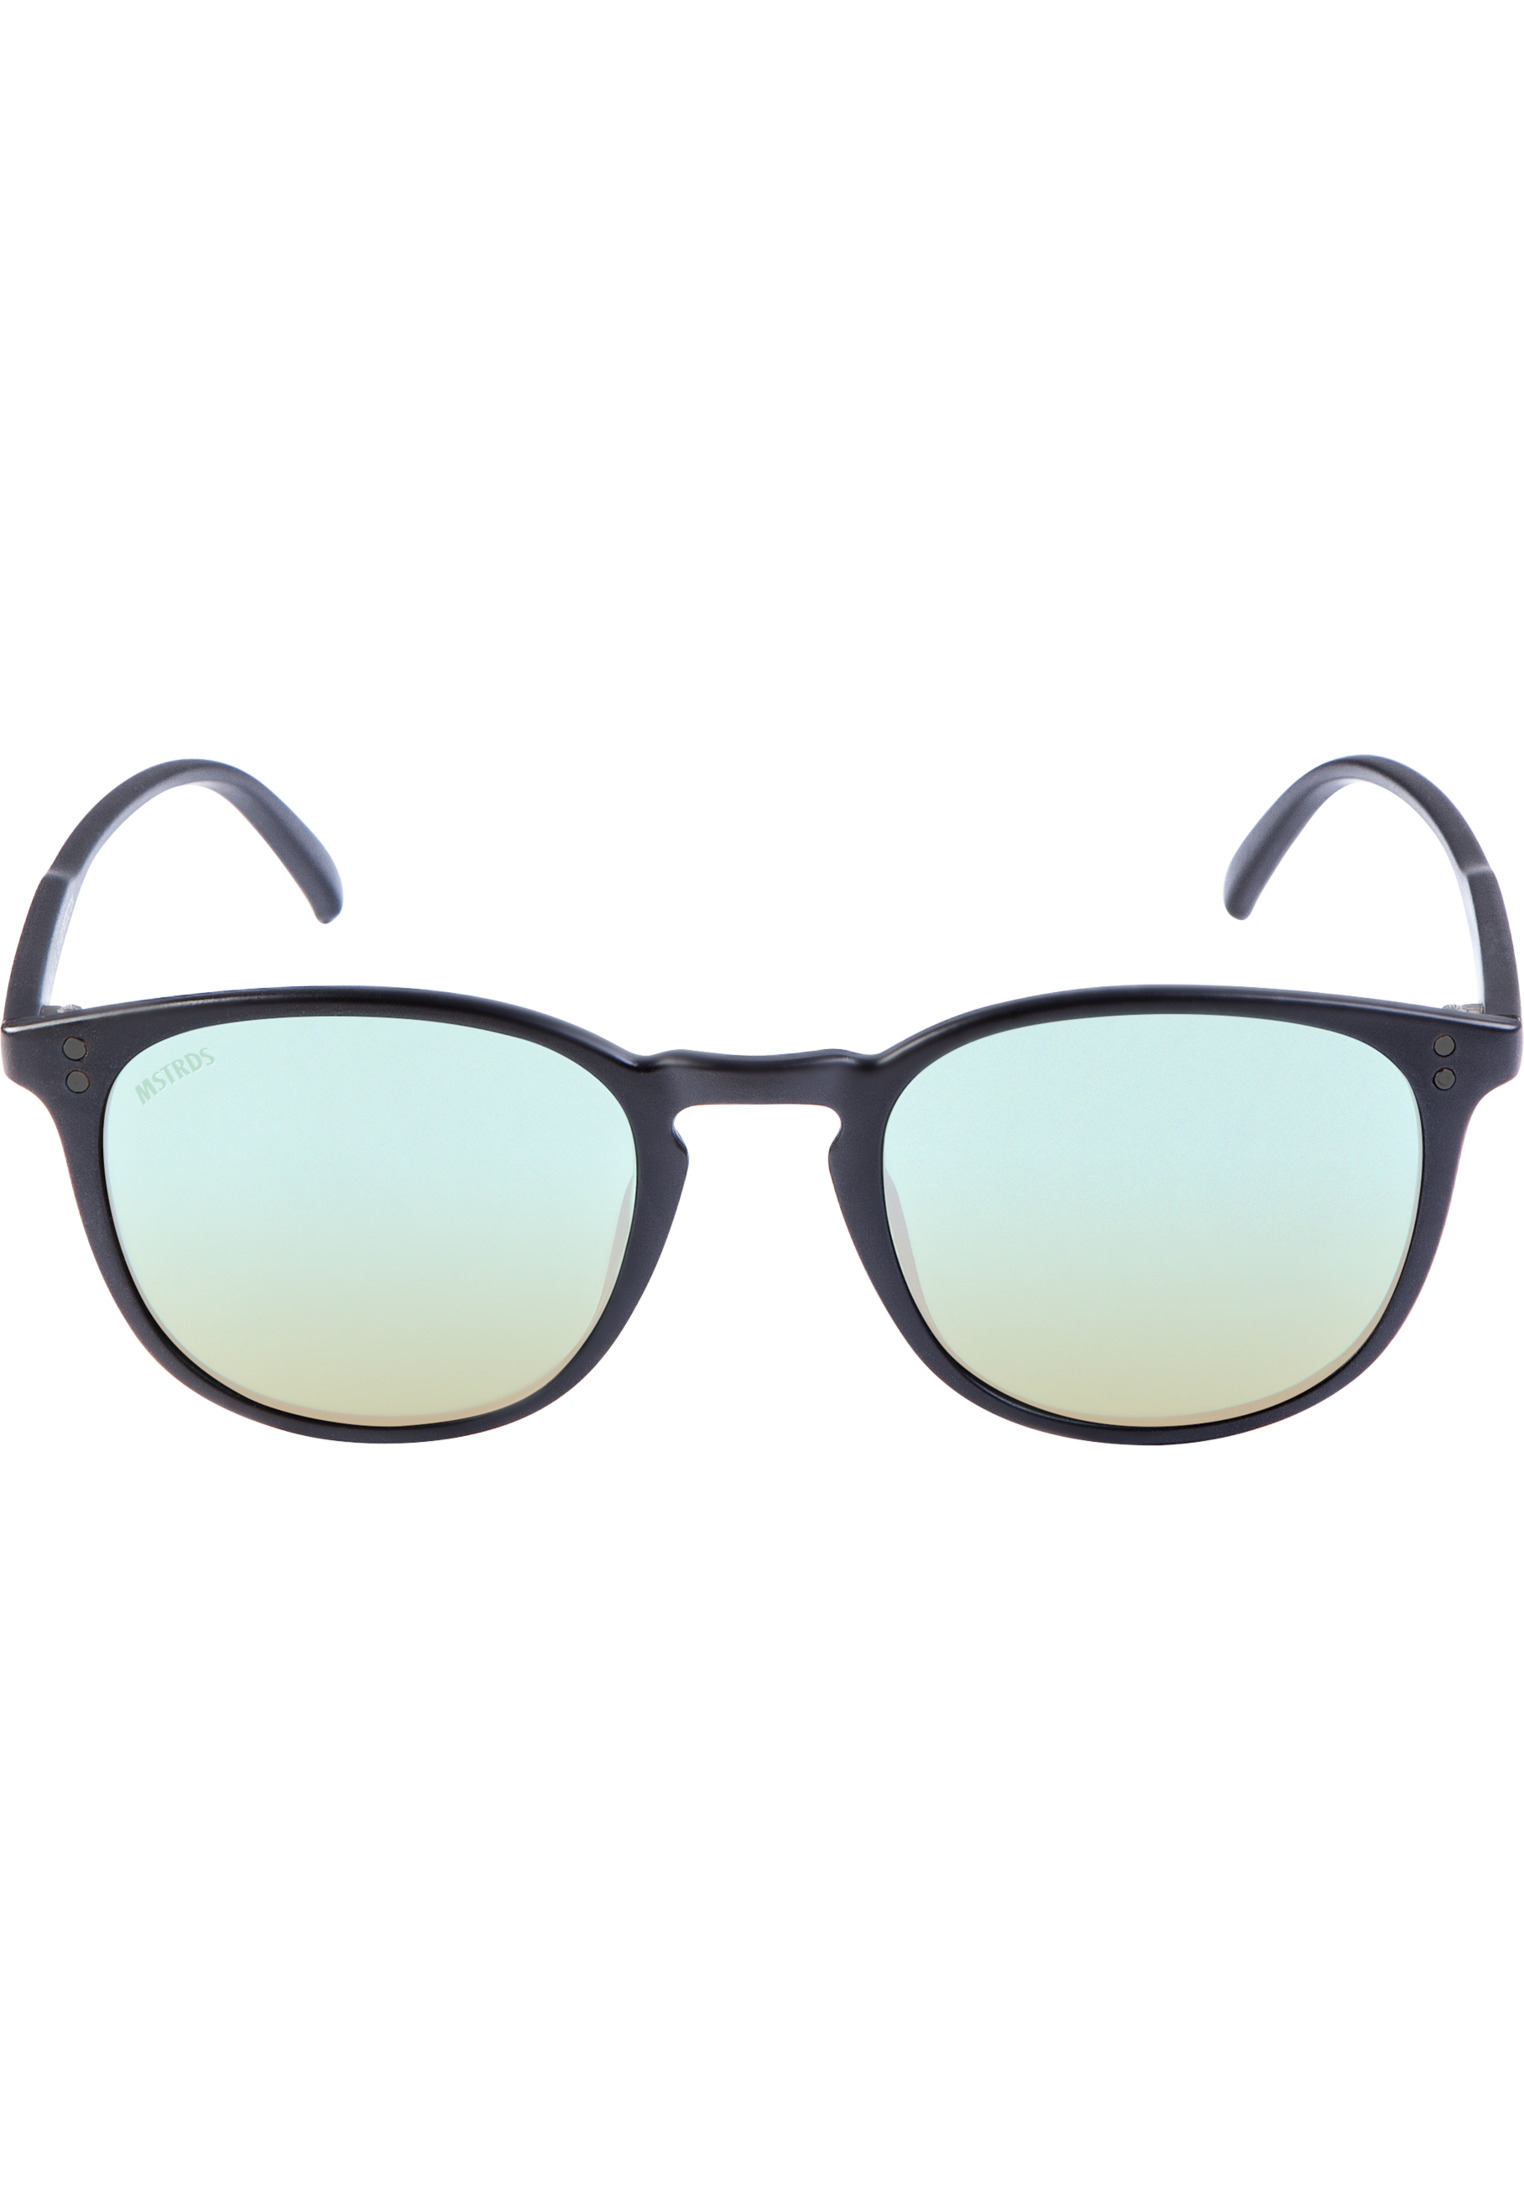 Master Dis Sunglasses Arthur Youth blk/blue - One Size